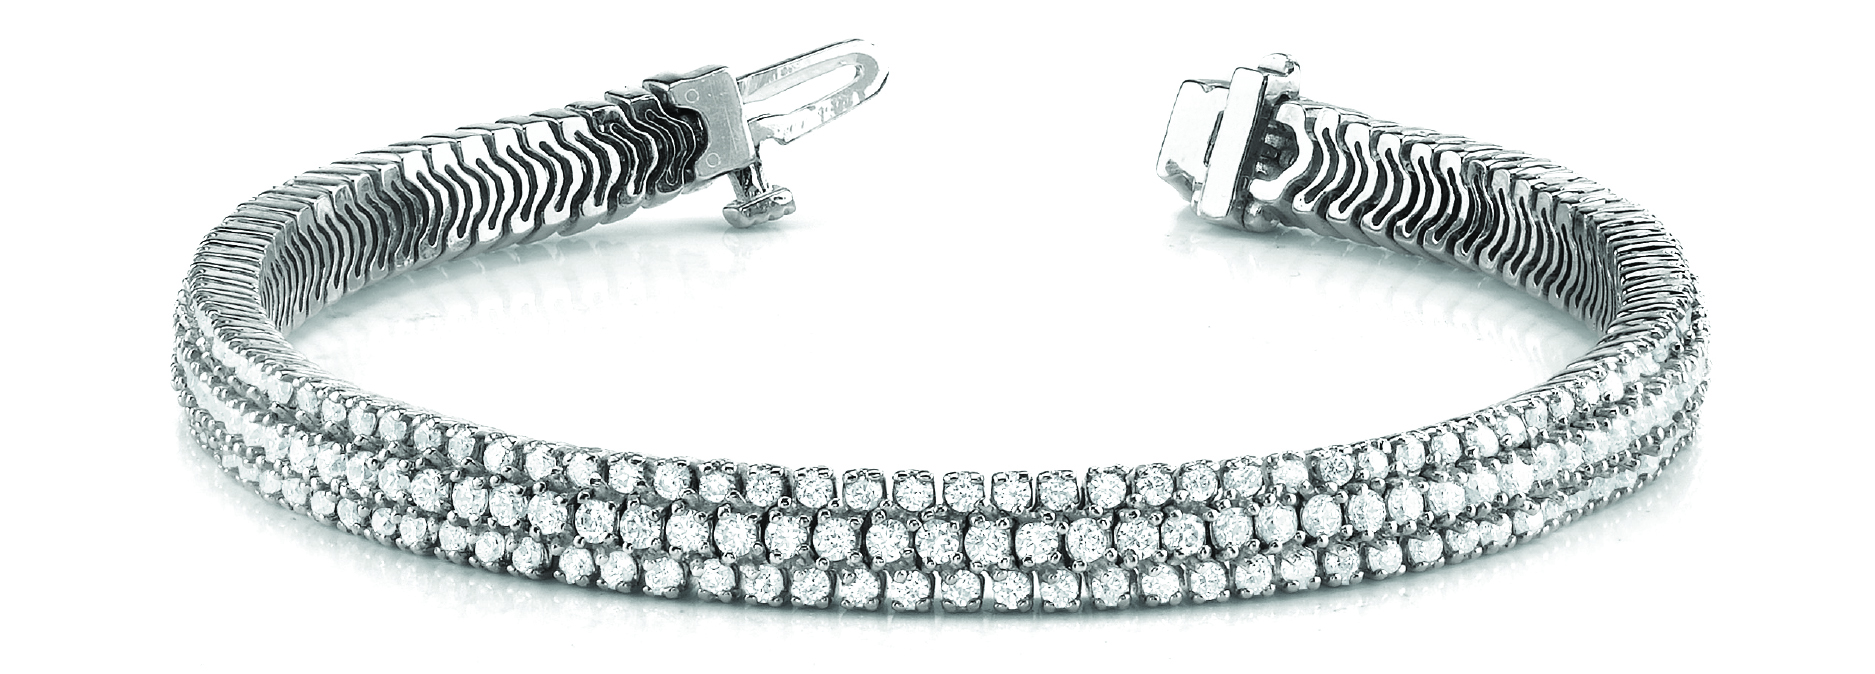 Multi Row Etoil Round Diamond Platinum Bracelet 8 Ct.